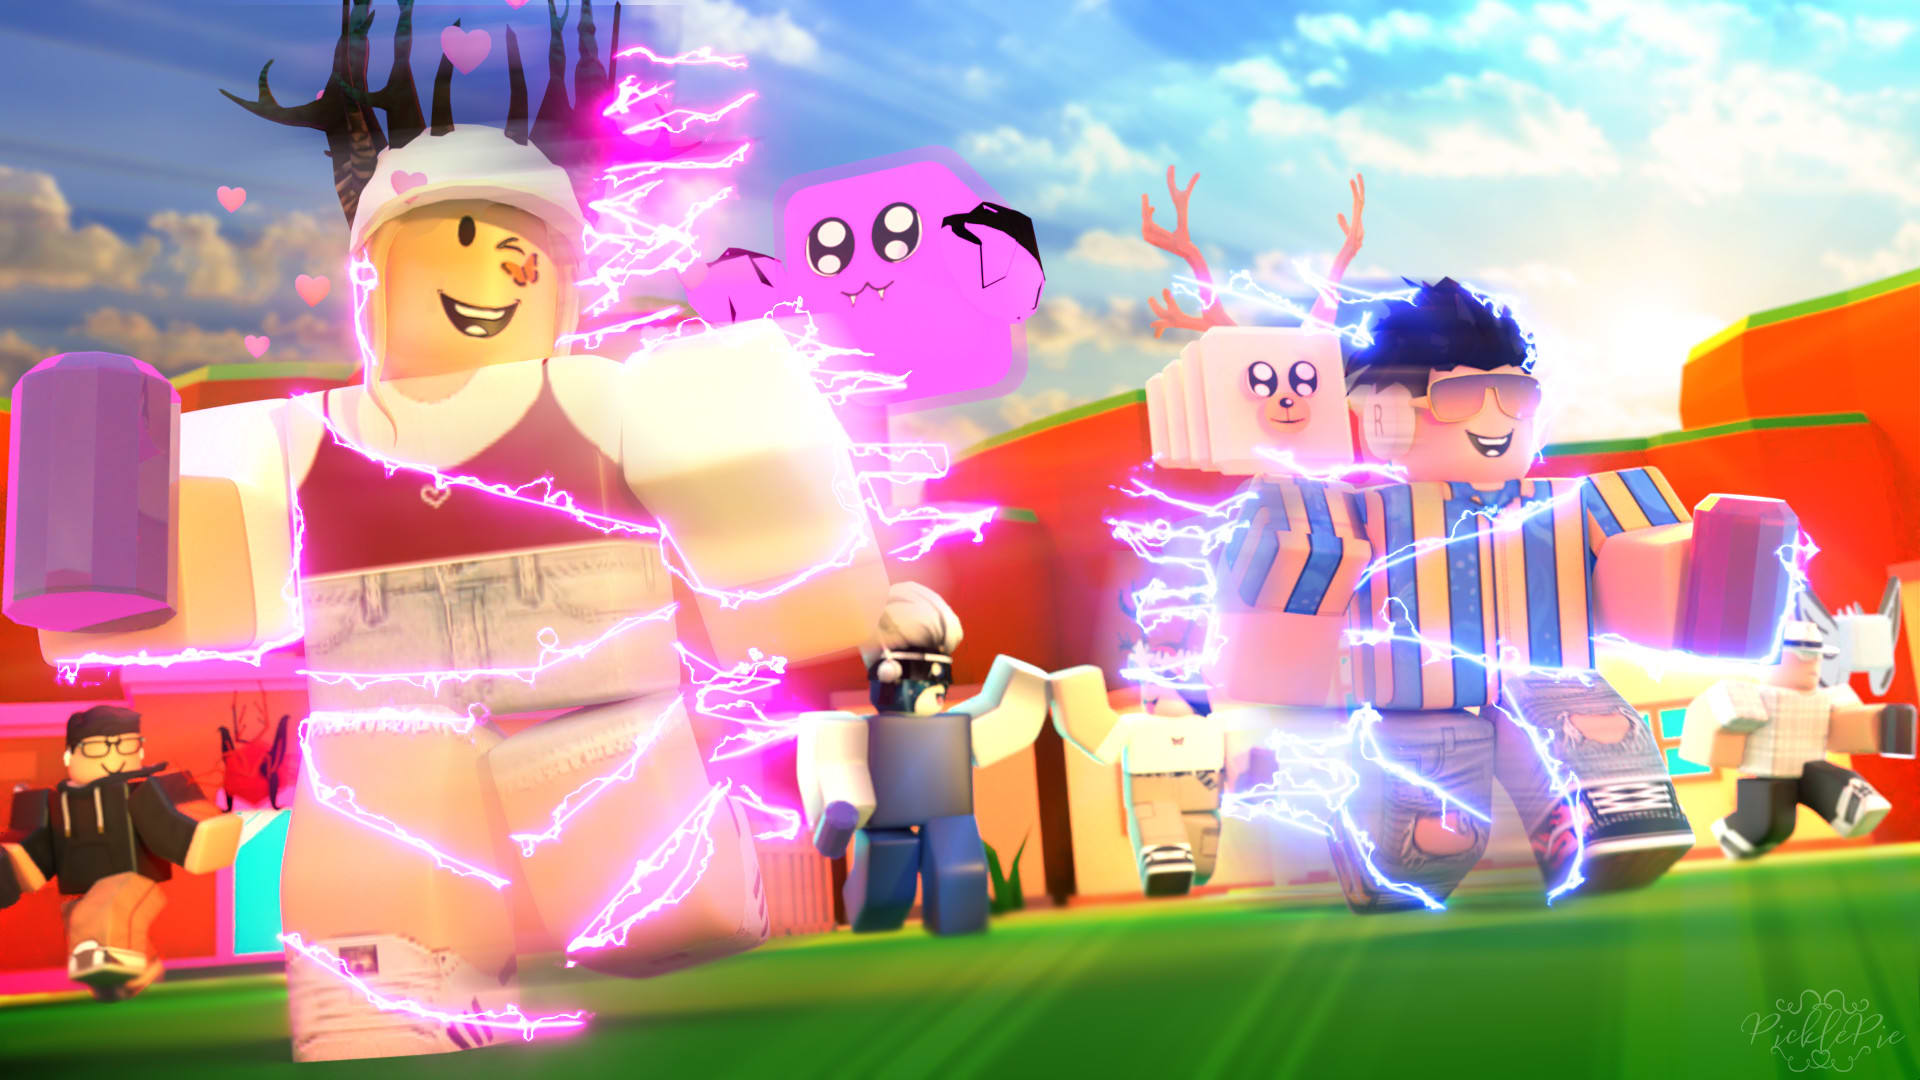 Realistic Cute Aesthetic Roblox Gfx Make You A High Quality Roblox Gfx By Picklepieyt